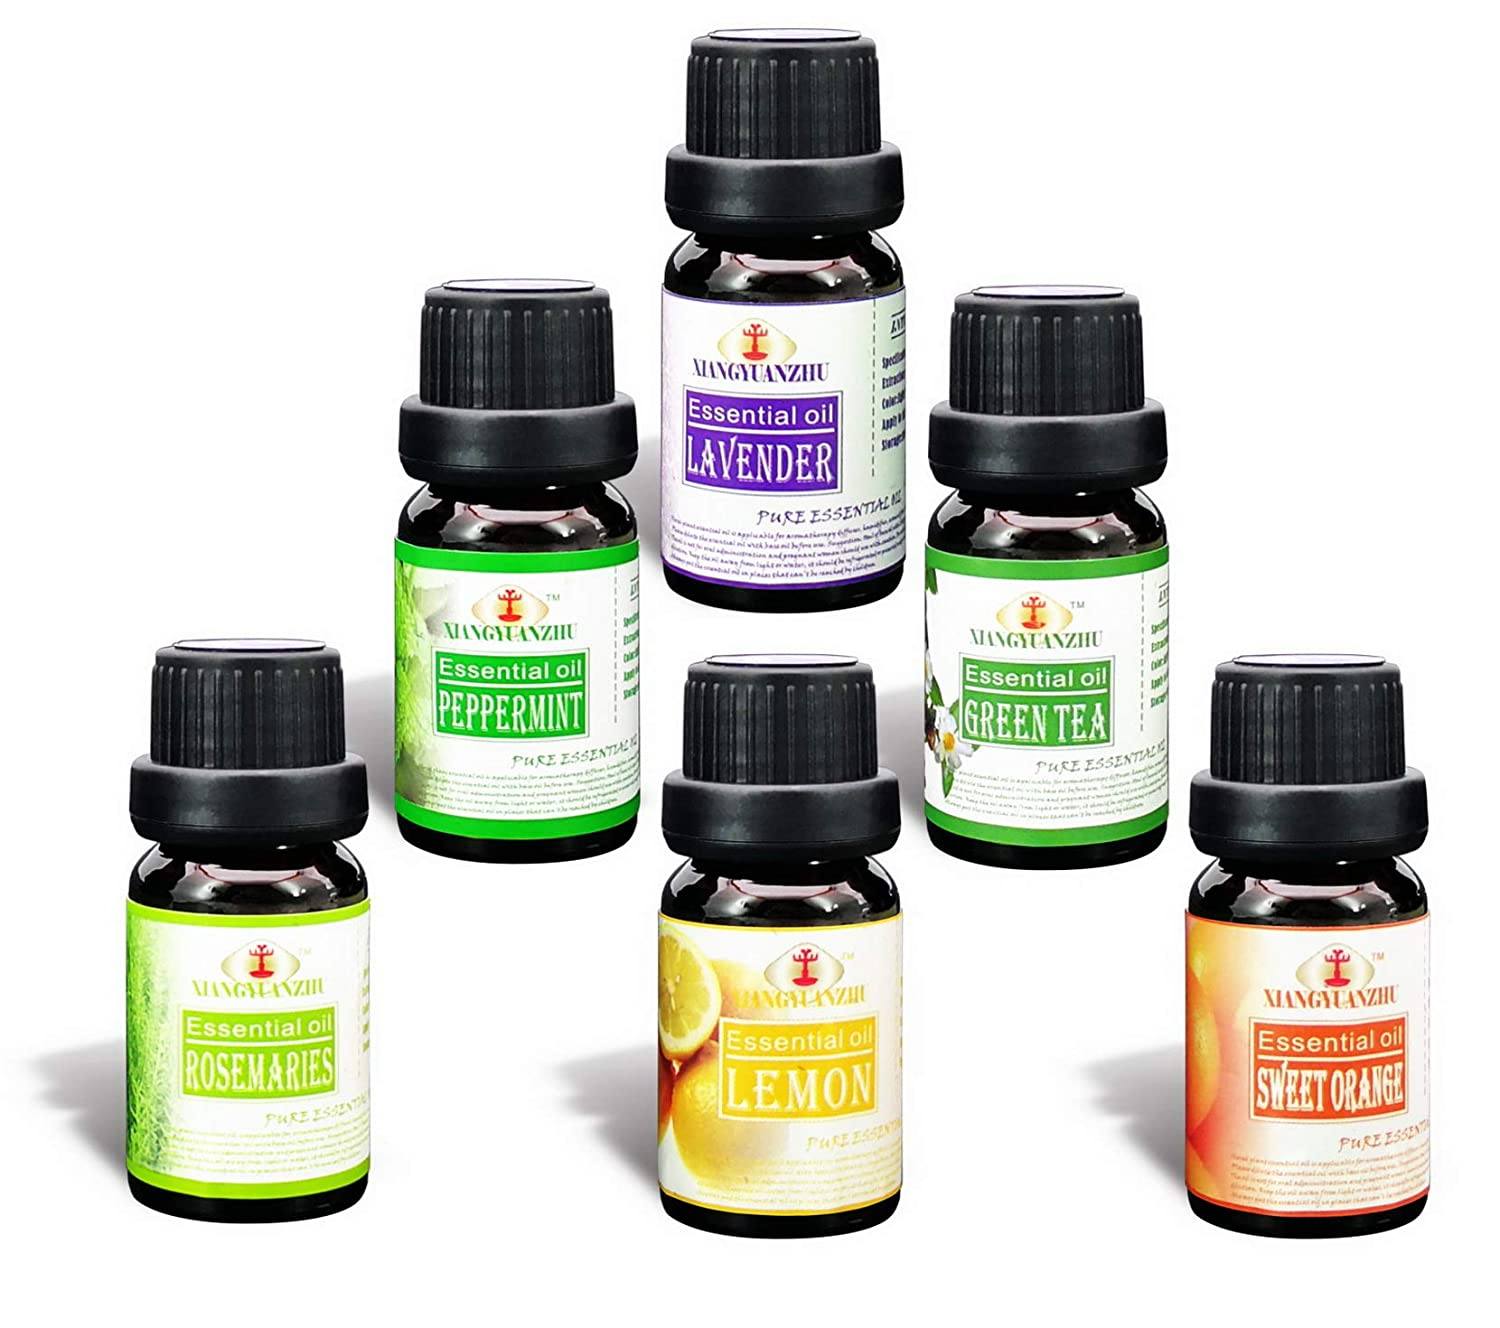 Essential Oils Gift Set,100% Pure & Natural Top 6 Aromatherapy Oils for Diffuser,Premium Grade Fragrance Oils 6x10ml (Rosemary,Tea Tree,Peppermint, Sweet Orange,Lavender,Lemon)